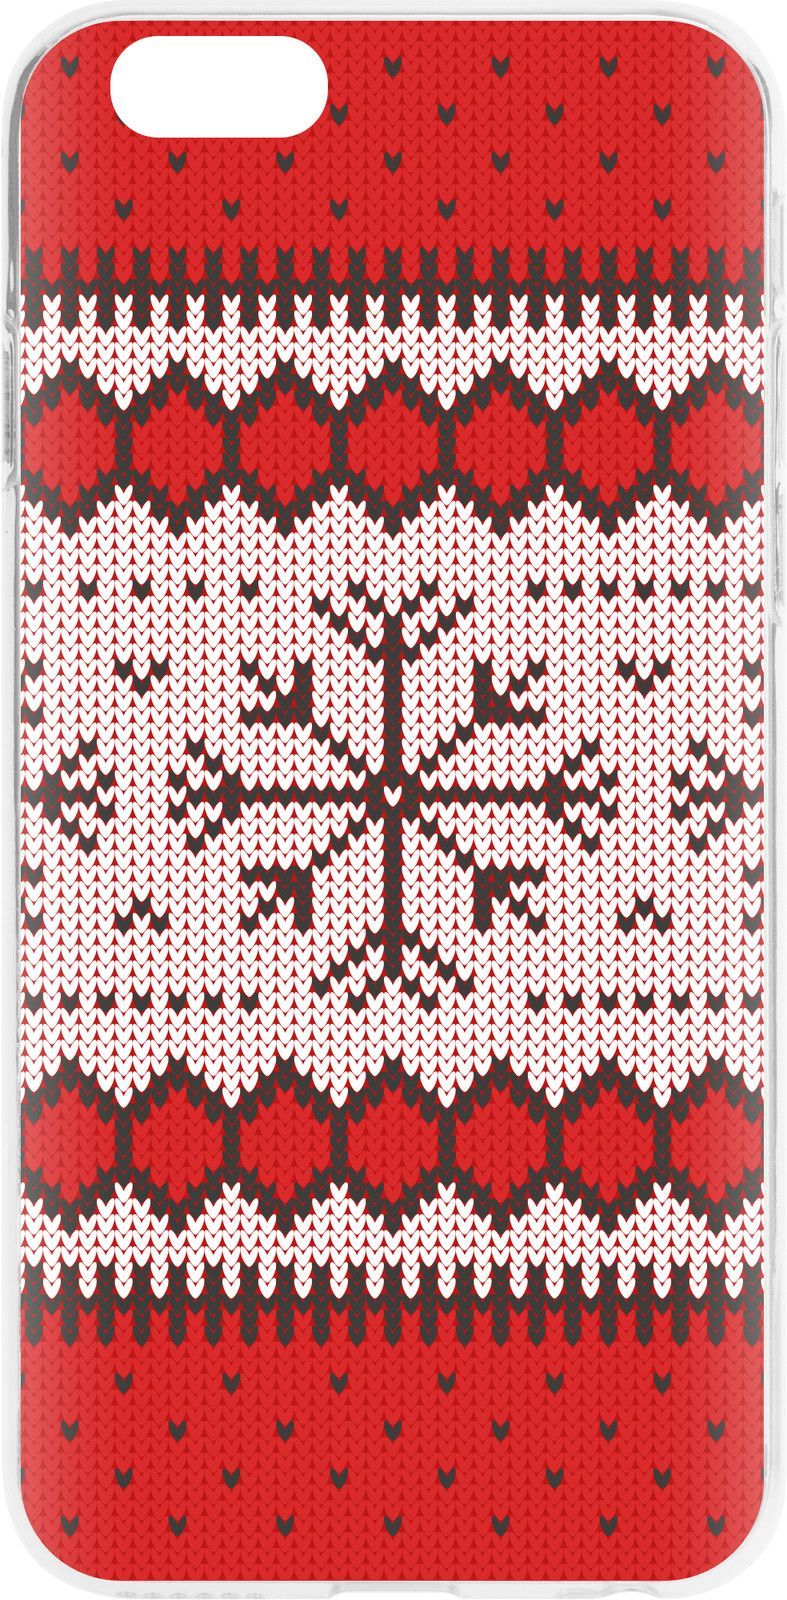 Flavr Xmas Ugly Sweater (iPhone 6/6S)